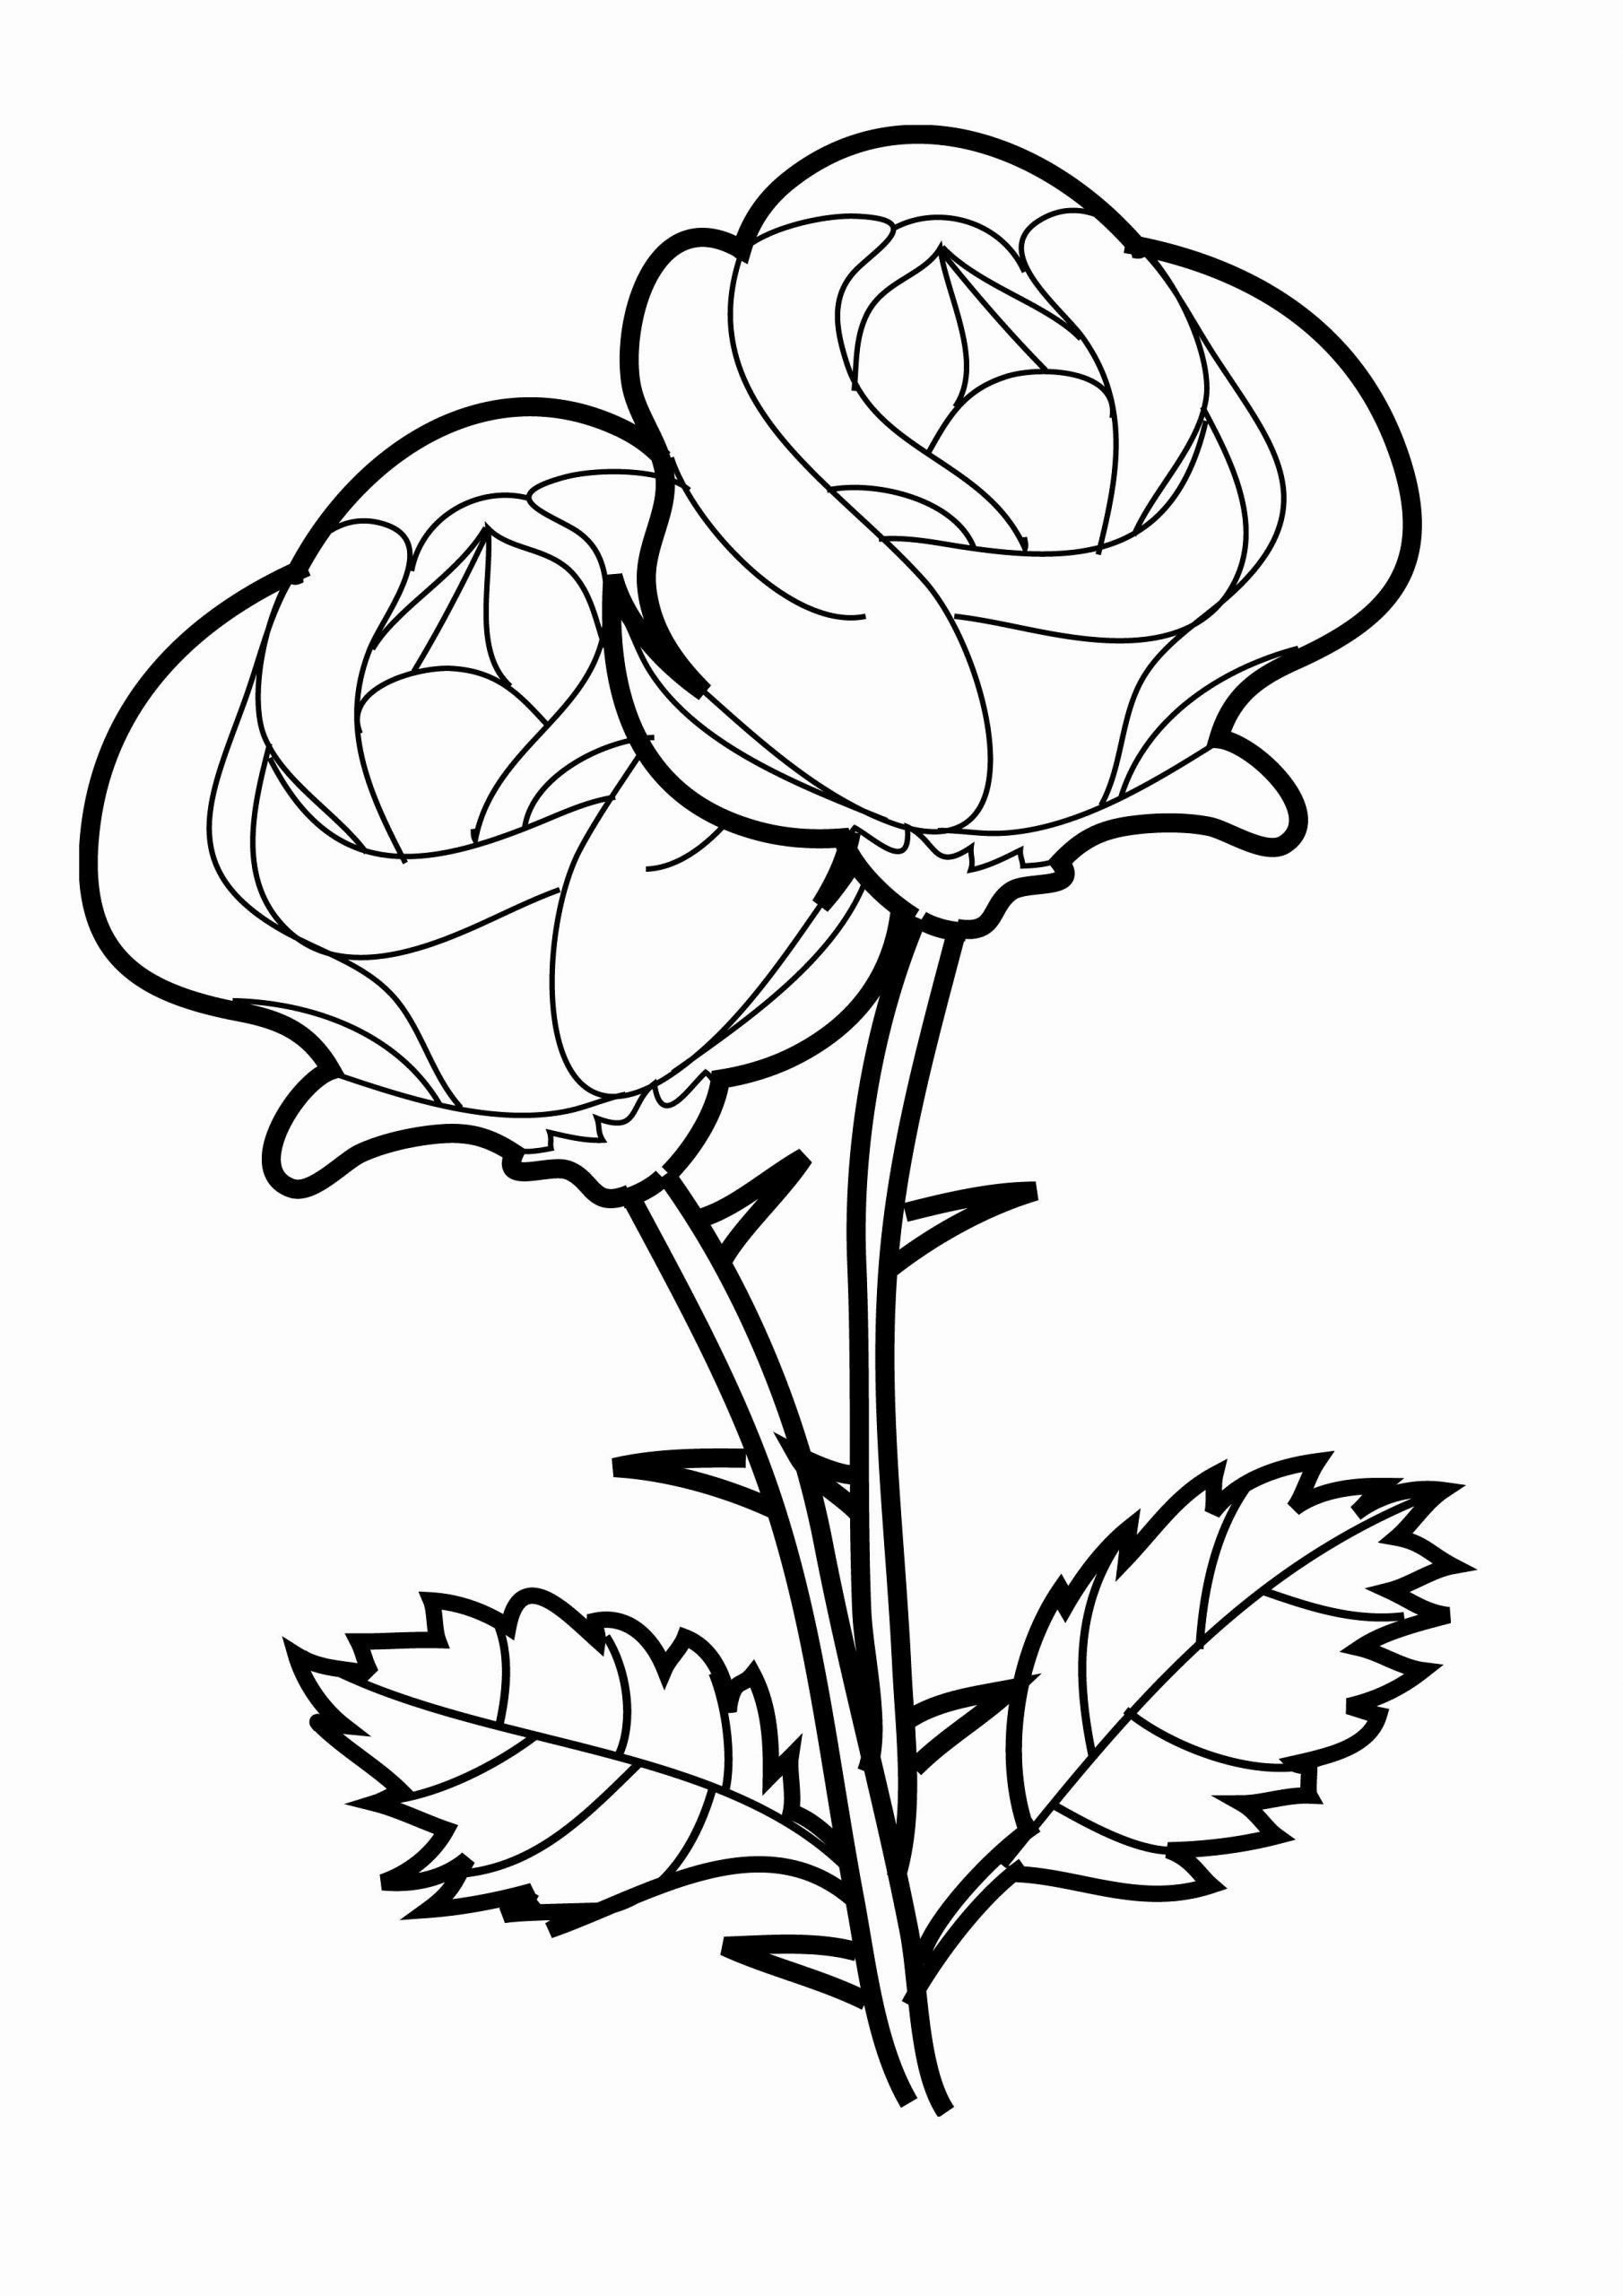 Rose Coloring Books Elegant Free Printable Roses Coloring Pages For Kids In 2020 Rose Coloring Pages Printable Flower Coloring Pages Mandala Coloring Pages